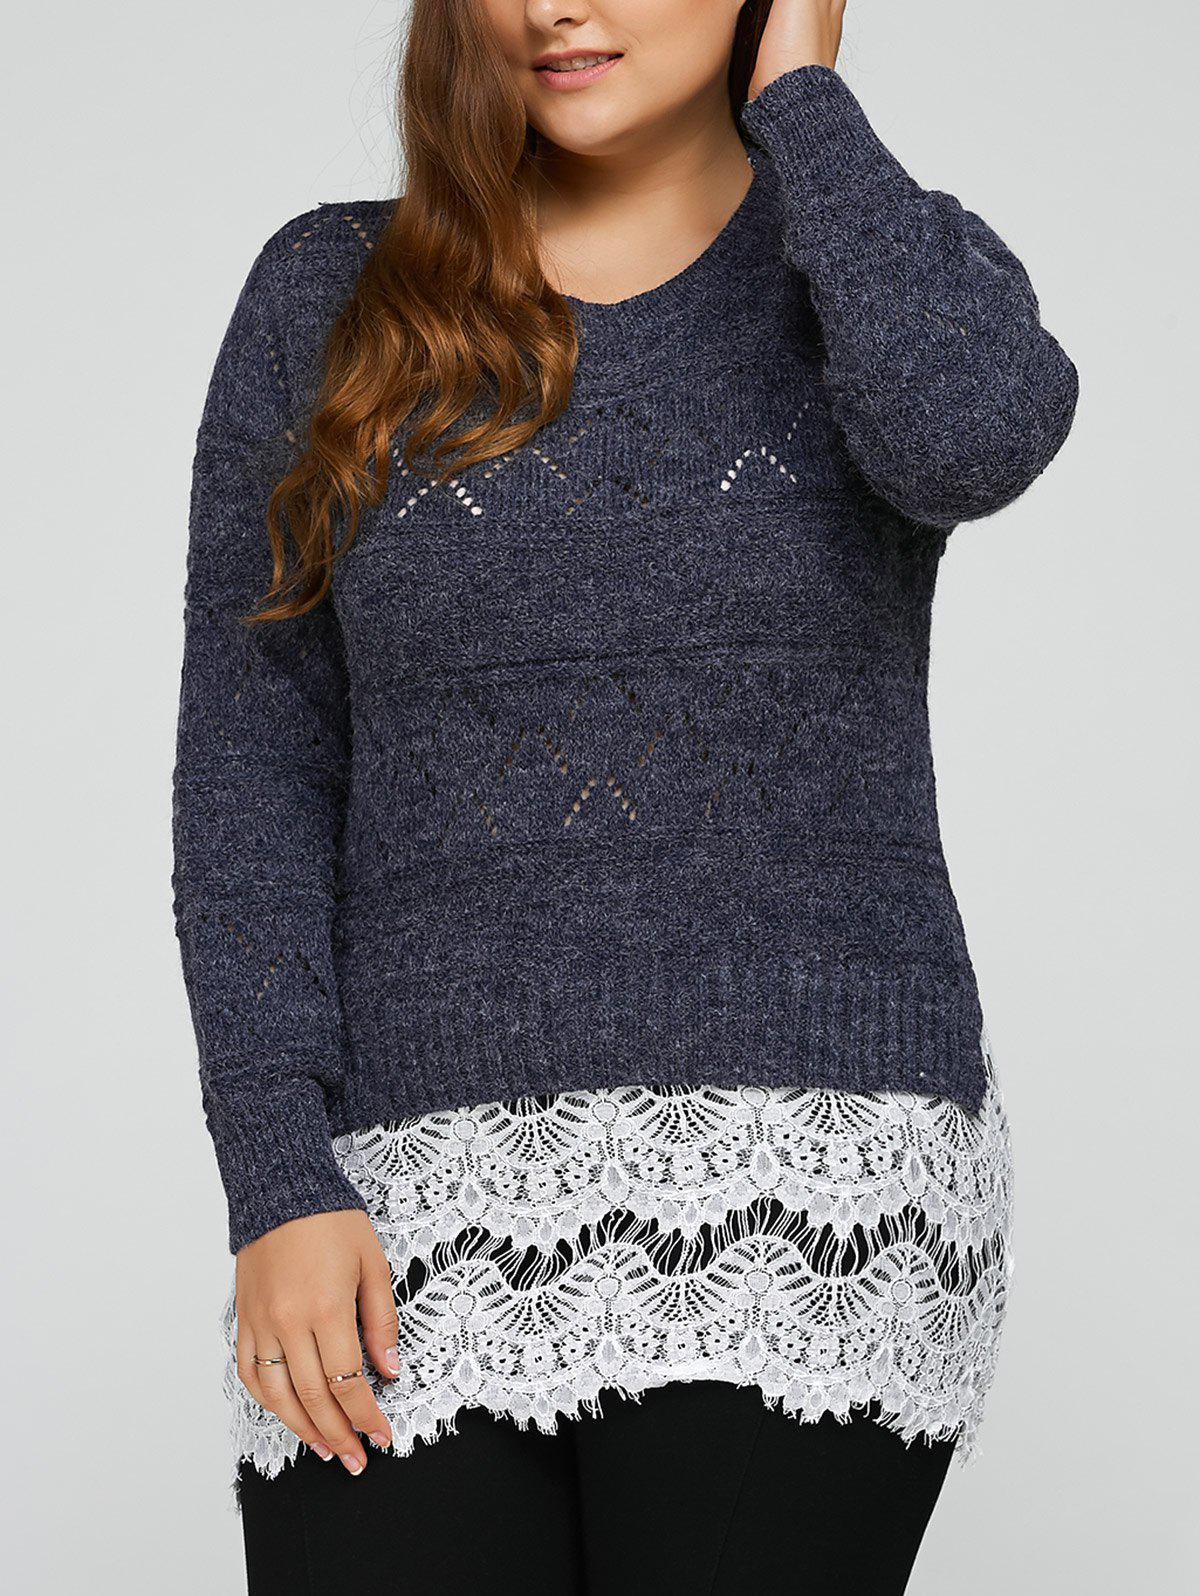 Plus Size Lace Splicing Openwork SweaterWomen<br><br><br>Size: 2XL<br>Color: COLORMIX